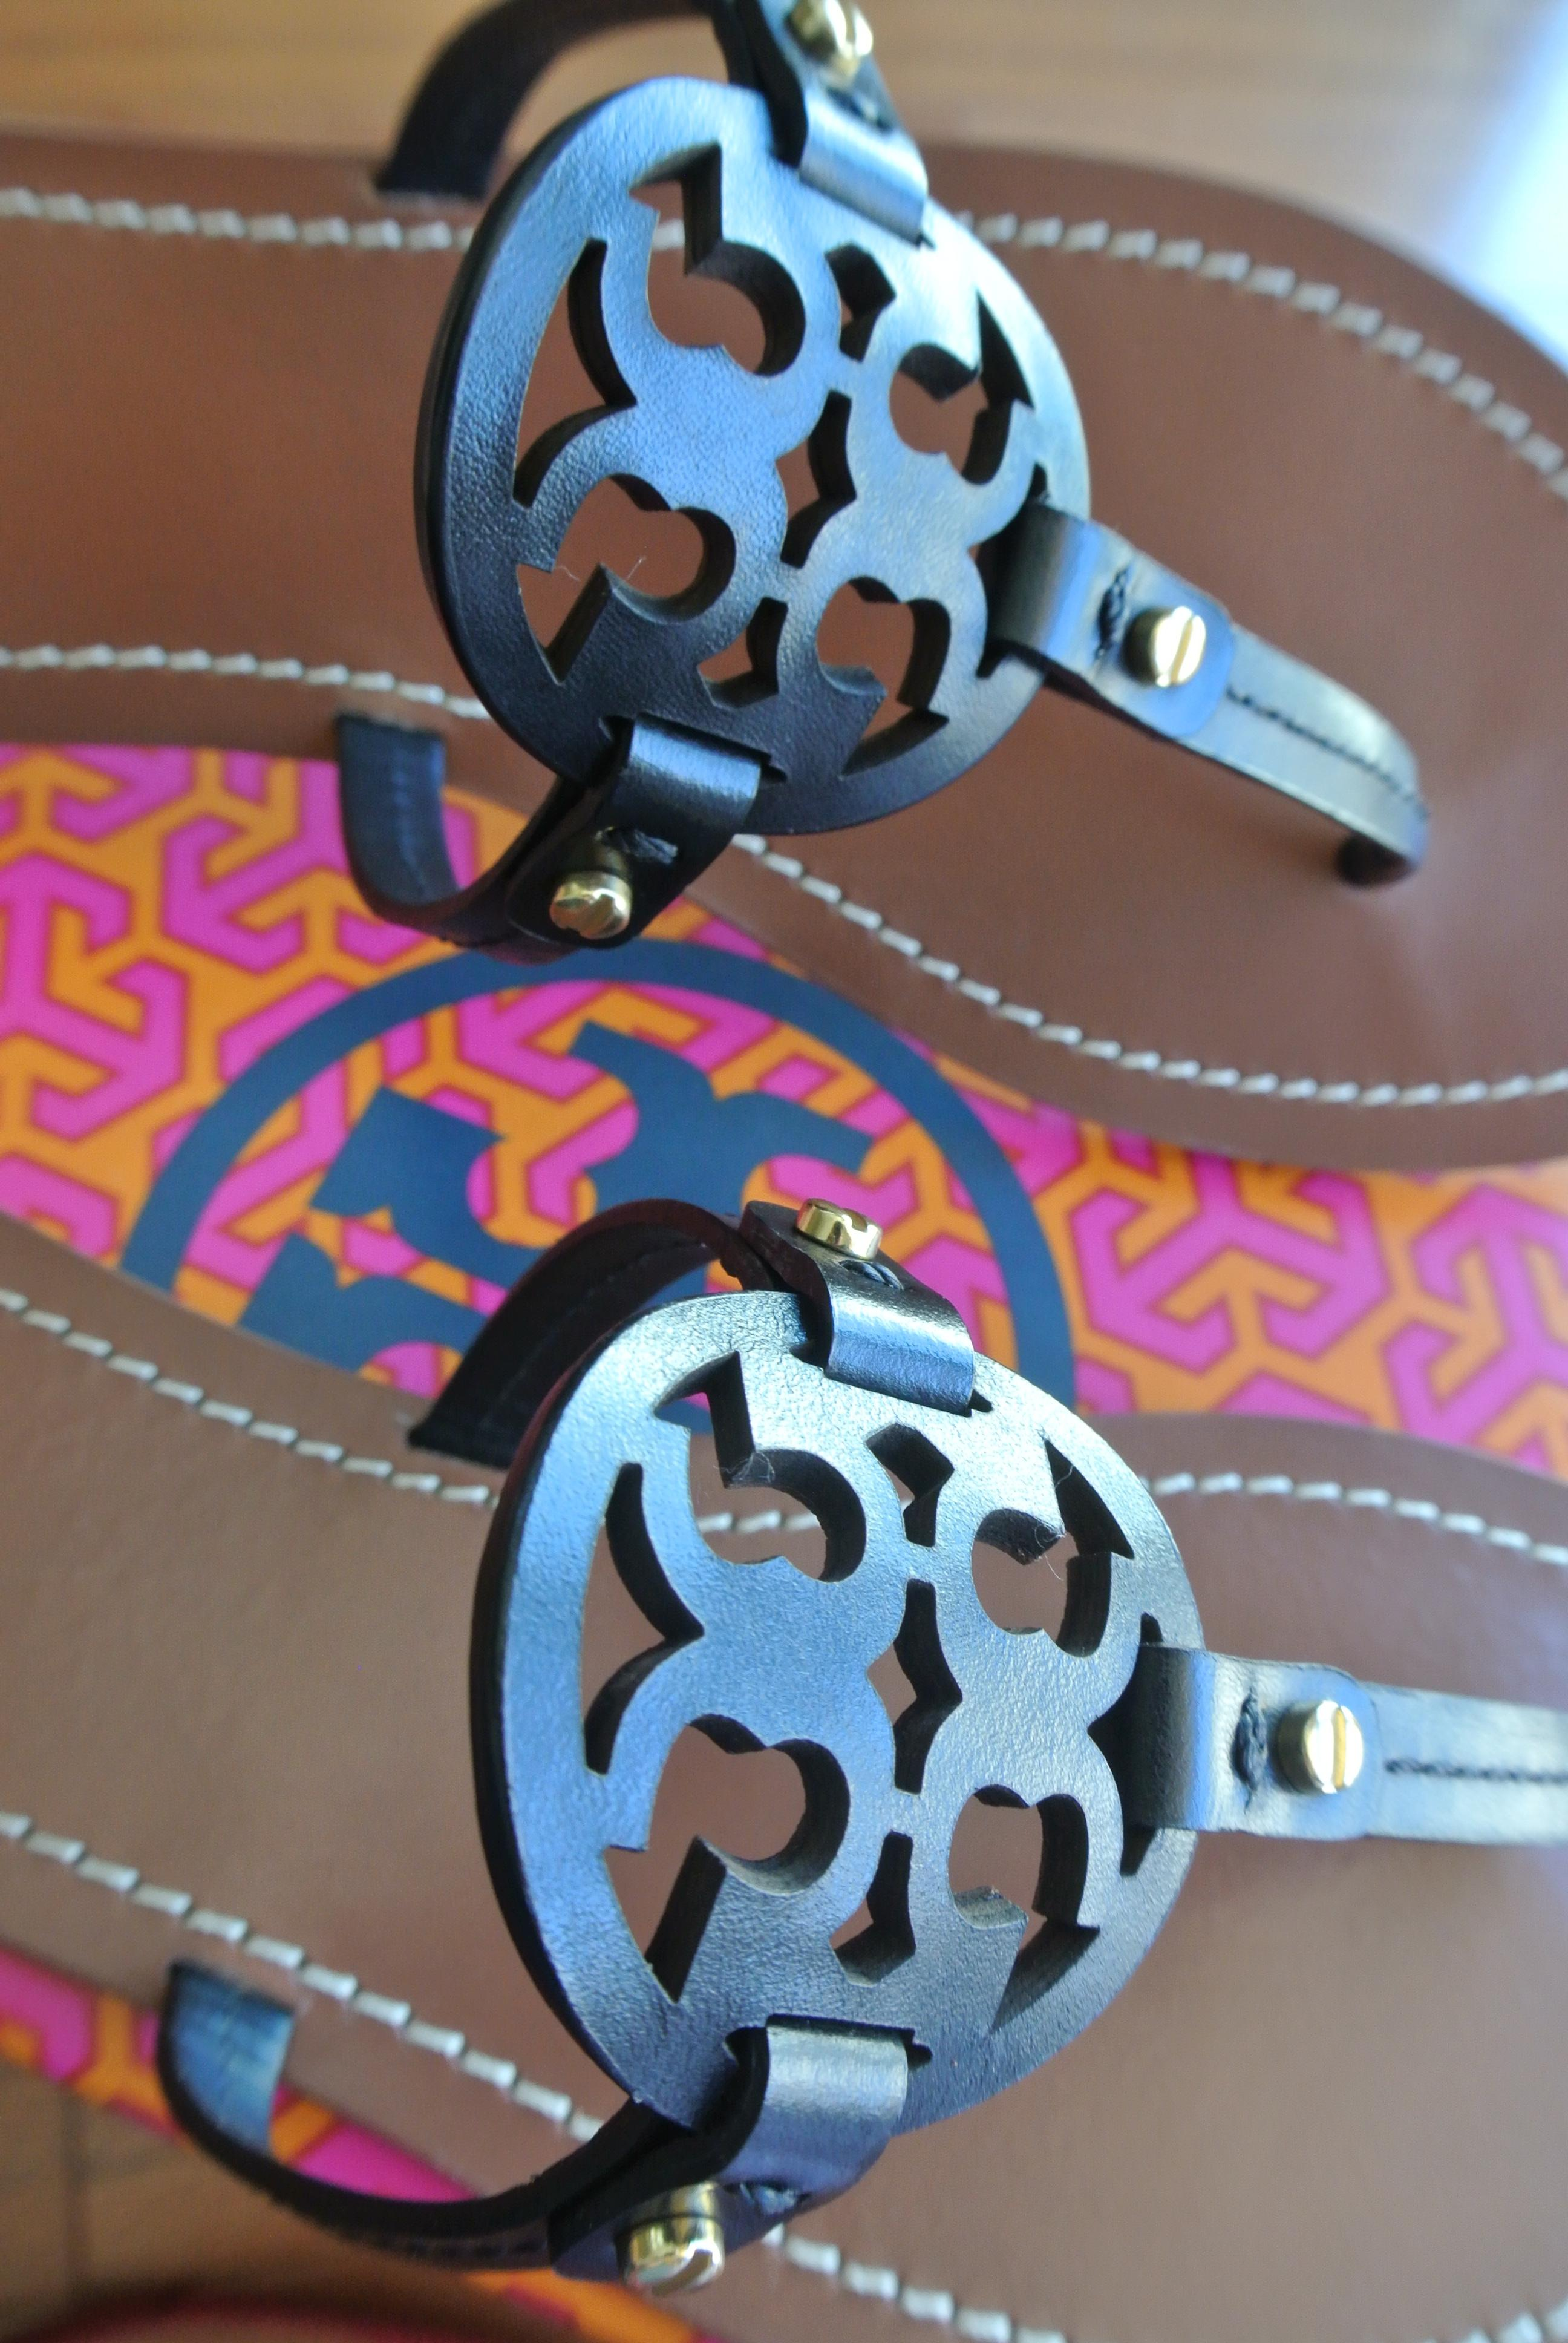 38ce9bf78130 ... Tory Burch Black End-of-summer-sale Mini Miller Sandals Size Size Size  ...